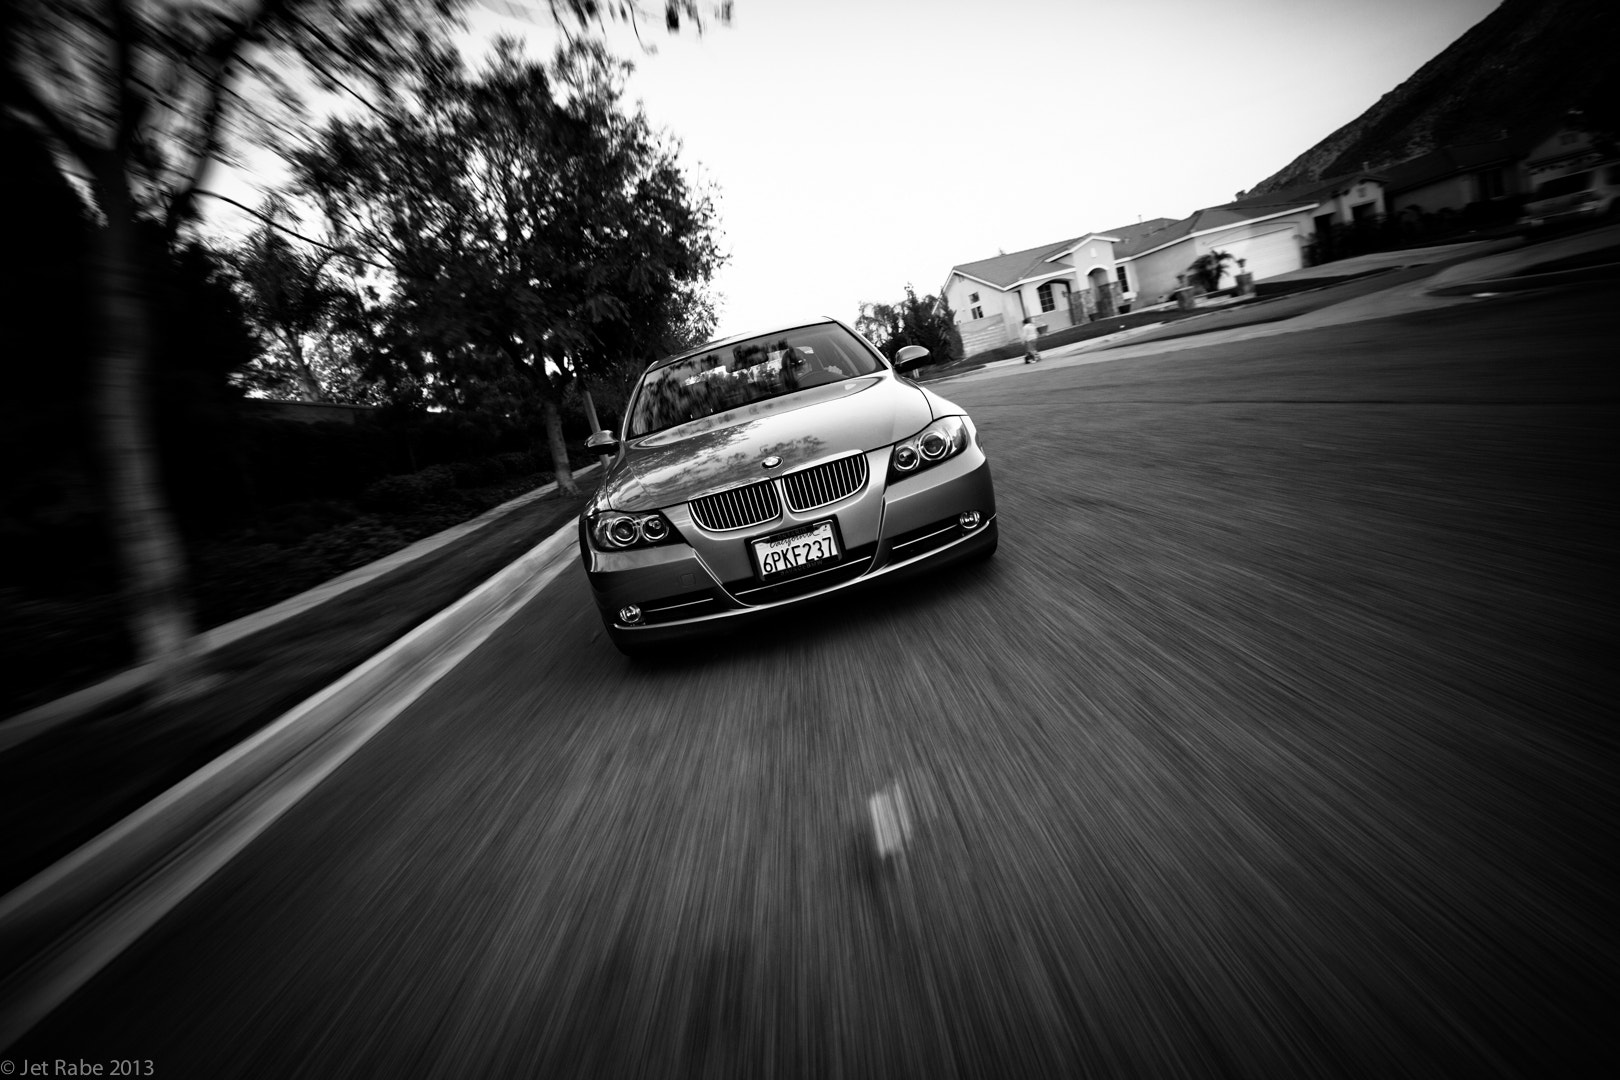 Photograph BMW 335i by Jet Rabe on 500px